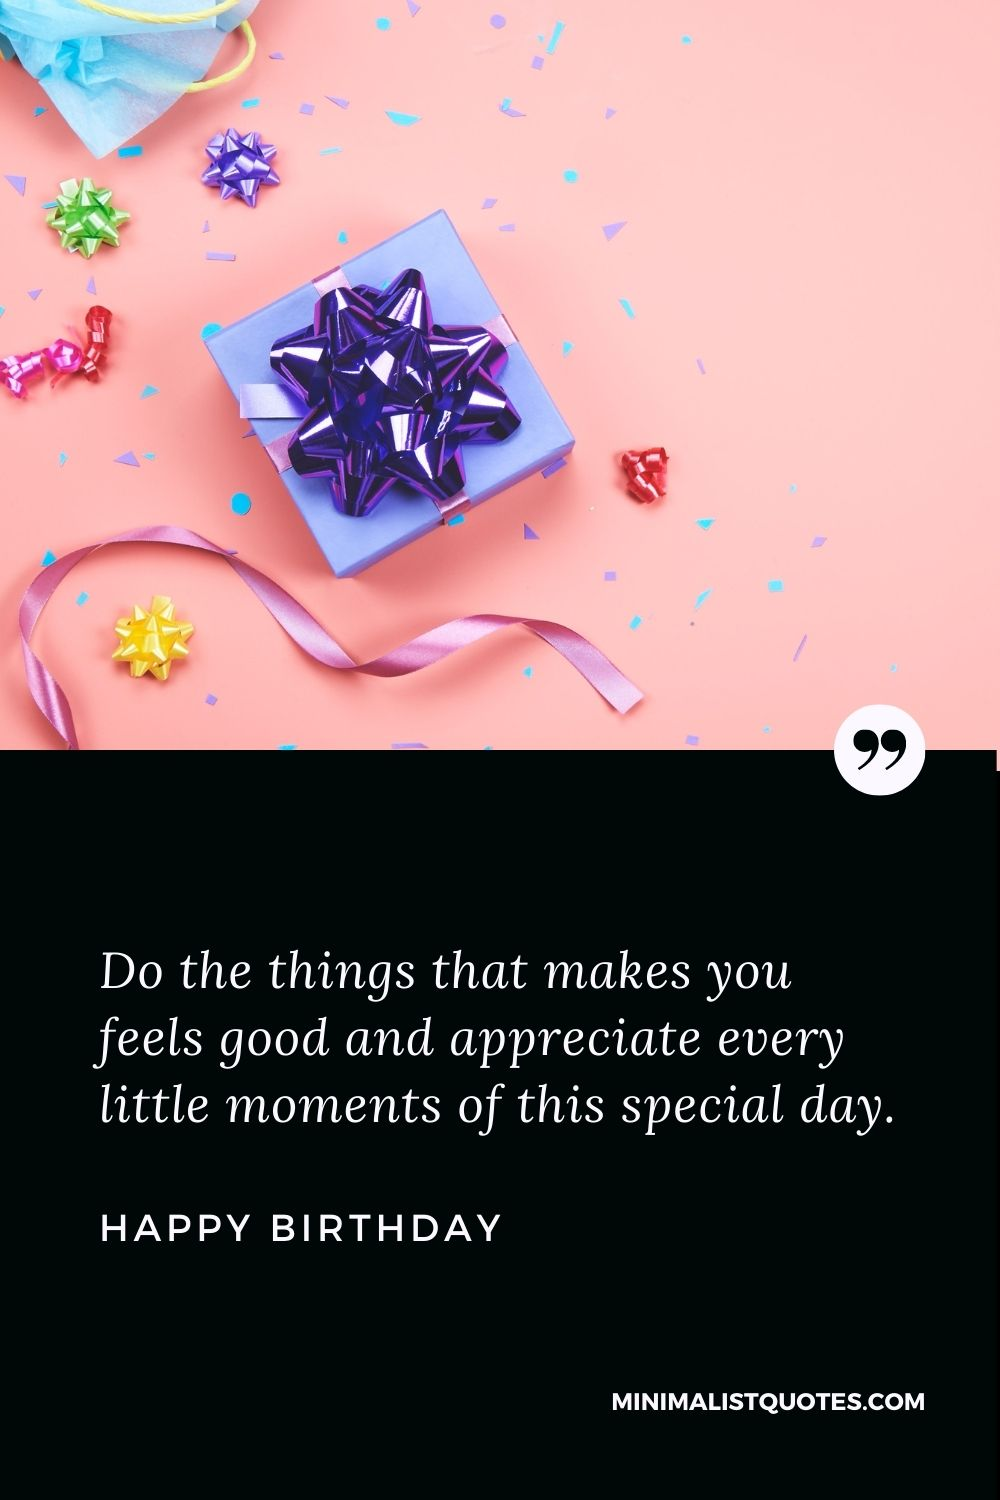 Happy Birthday Wish - Do the things that makes you feels good and appreciate every little moments of this special day.